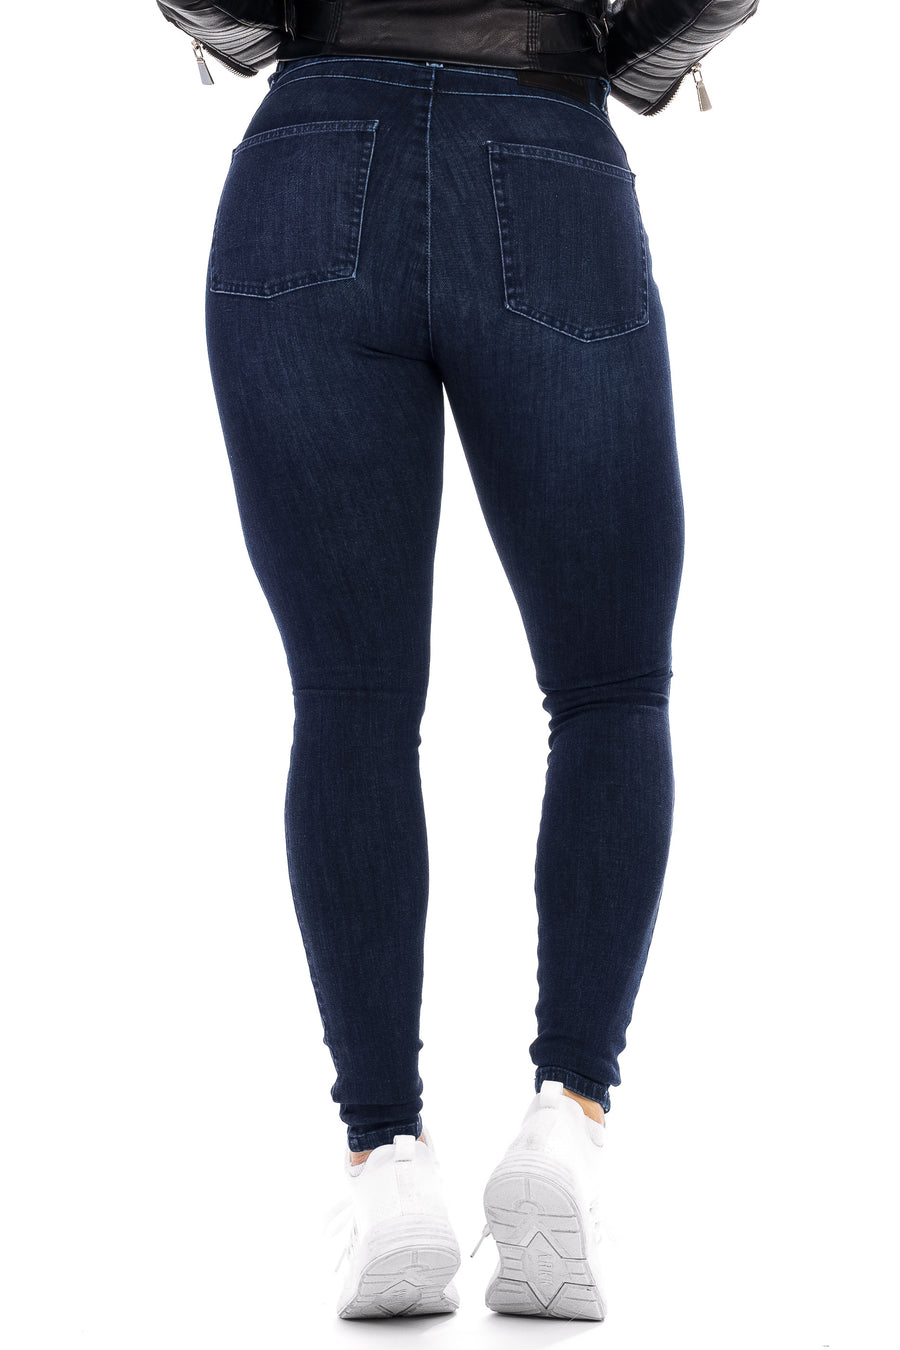 Womens Ripped 360 Fitjeans - Deep Indigo